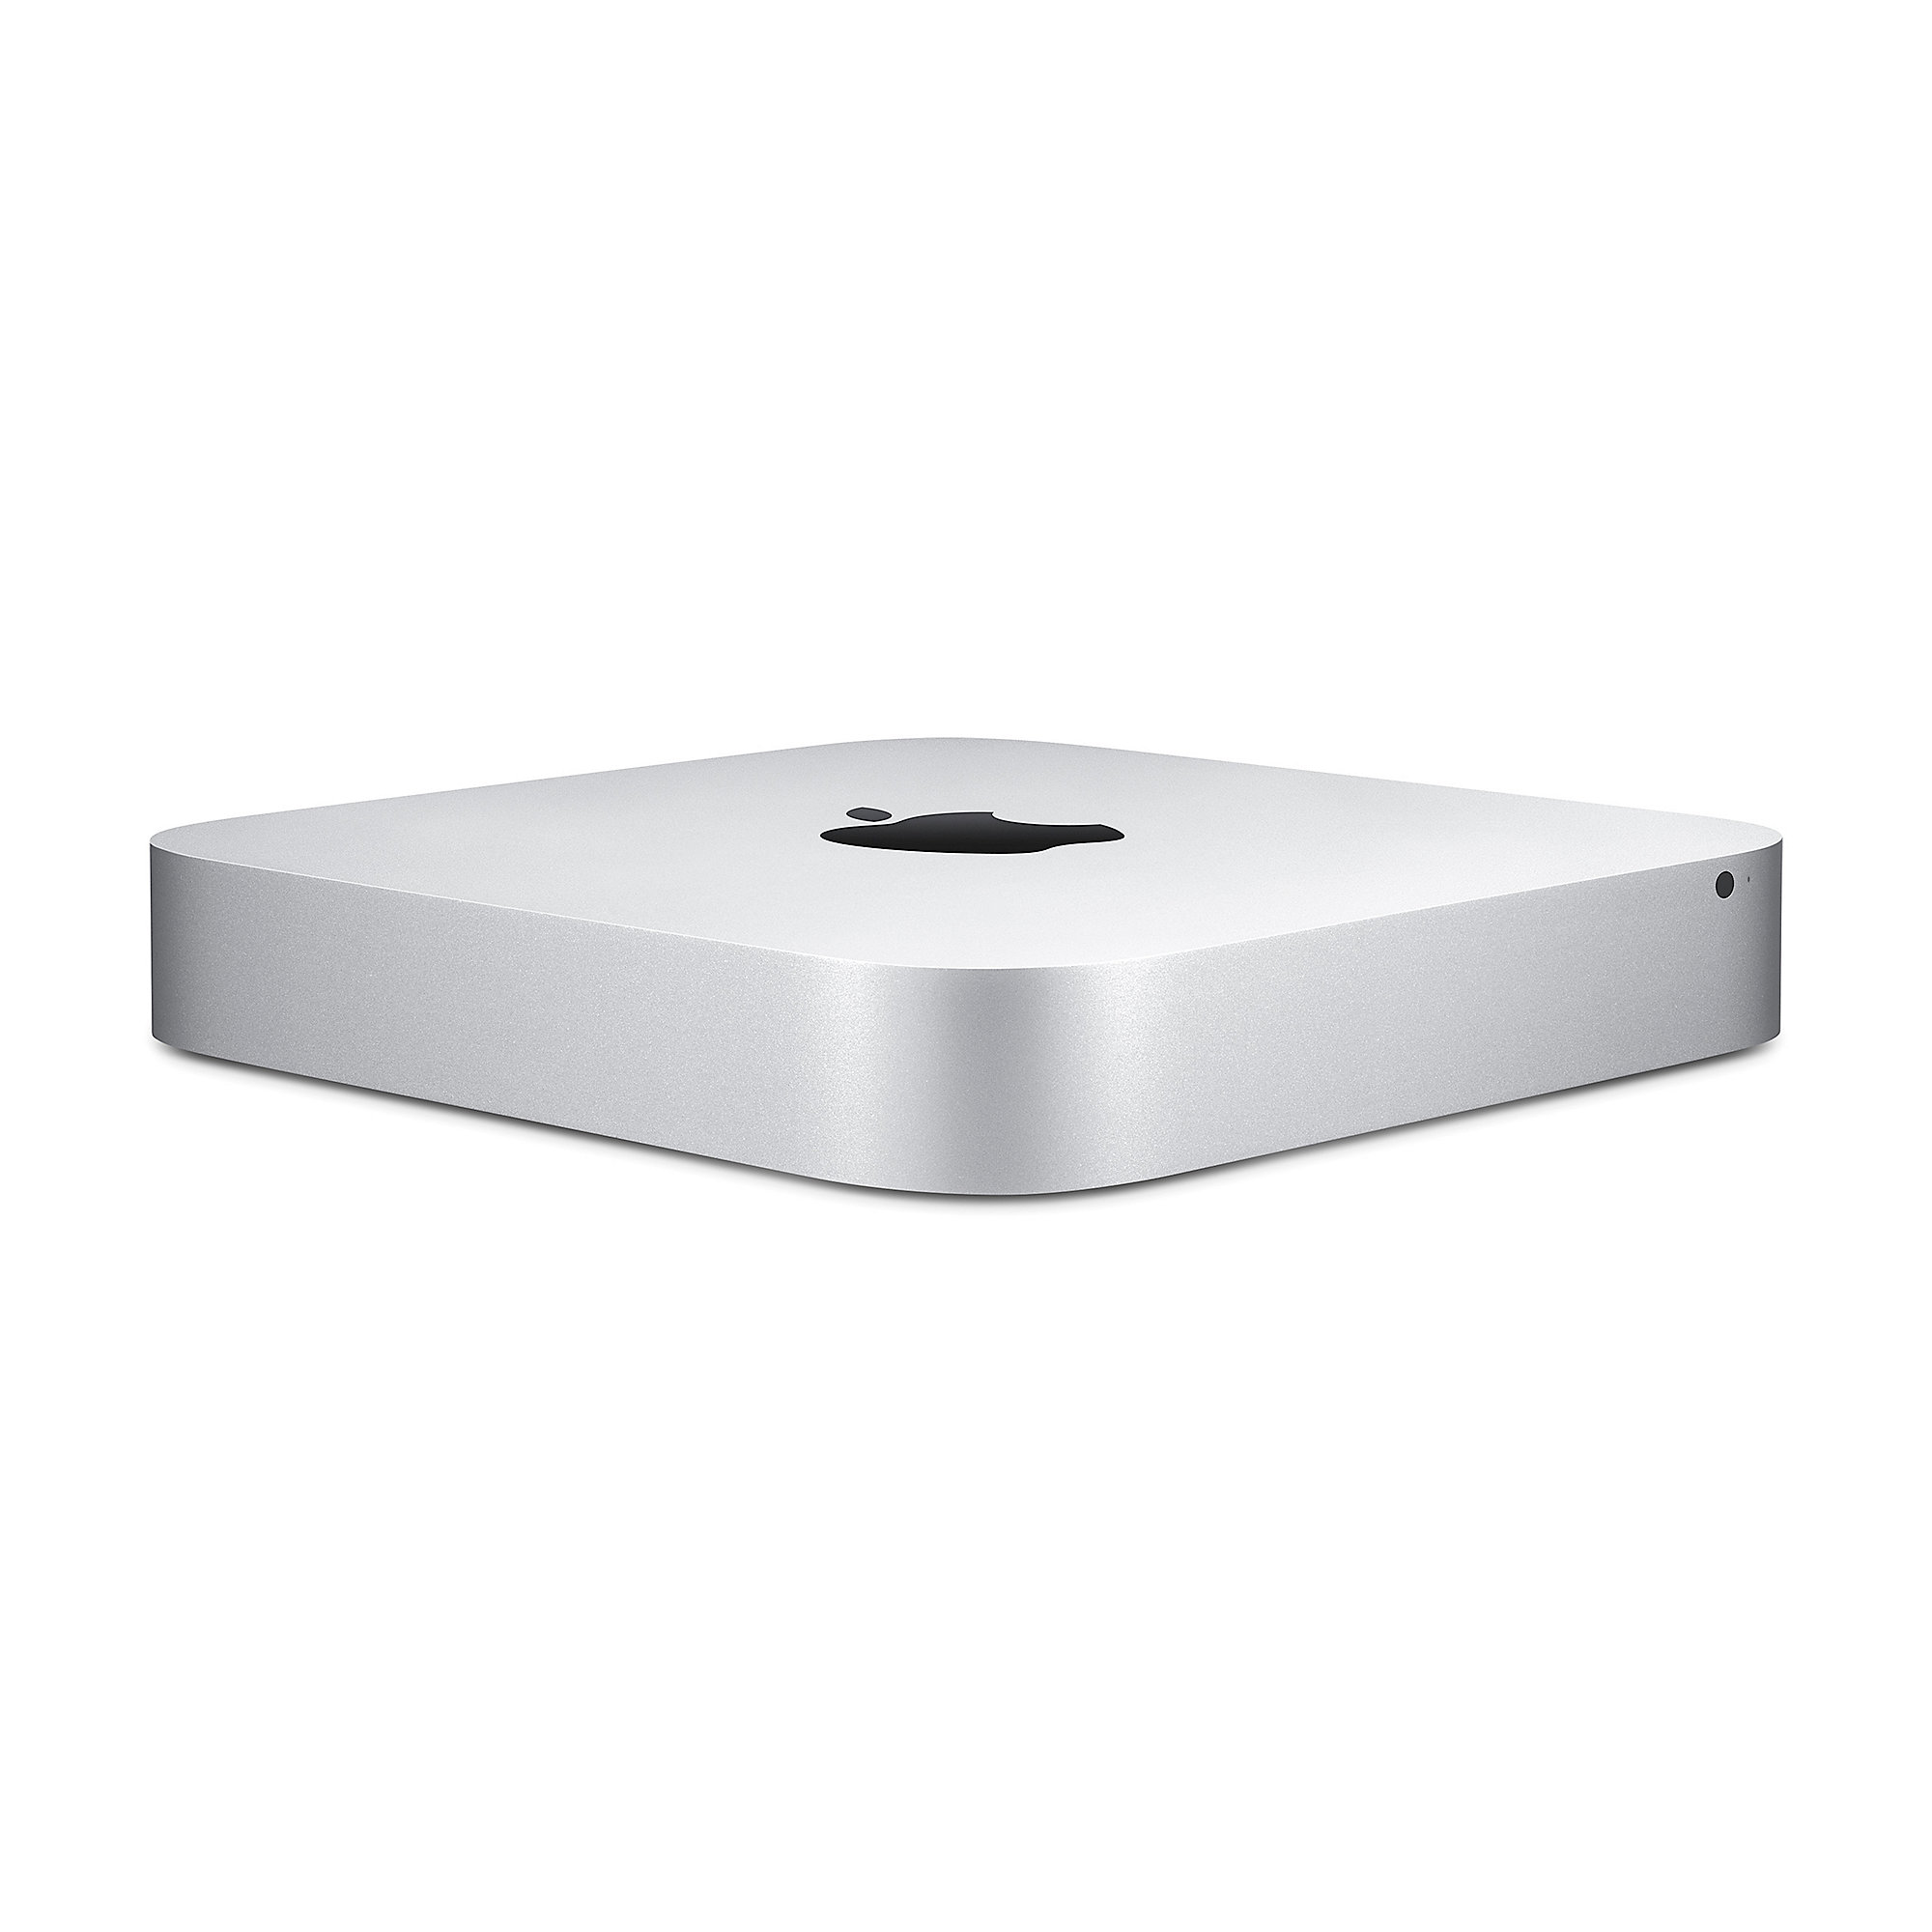 Apple Mac mini 1,4 GHz Intel Core i5 8 GB 500GB HD5000 BTO